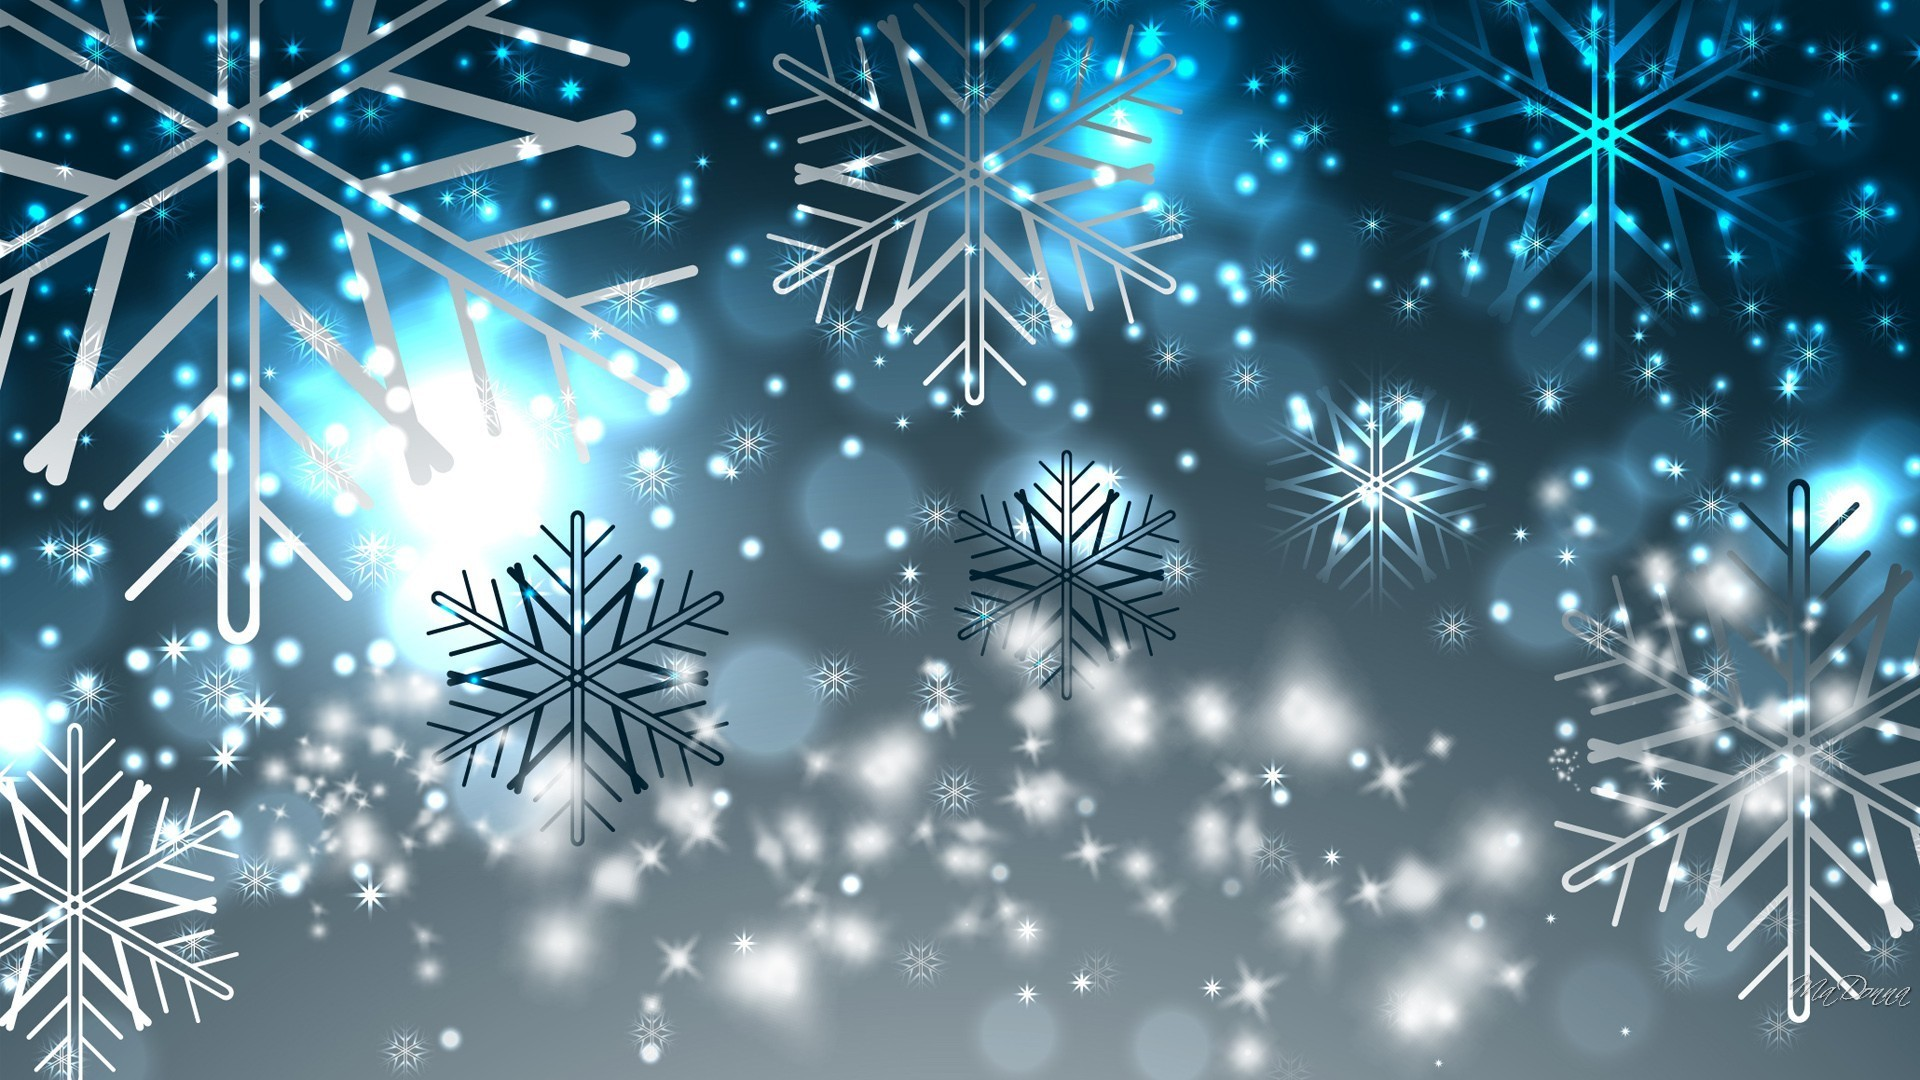 Winter Christmas Backgrounds: Charlie Brown Christmas Wallpaper Desktop ·① WallpaperTag